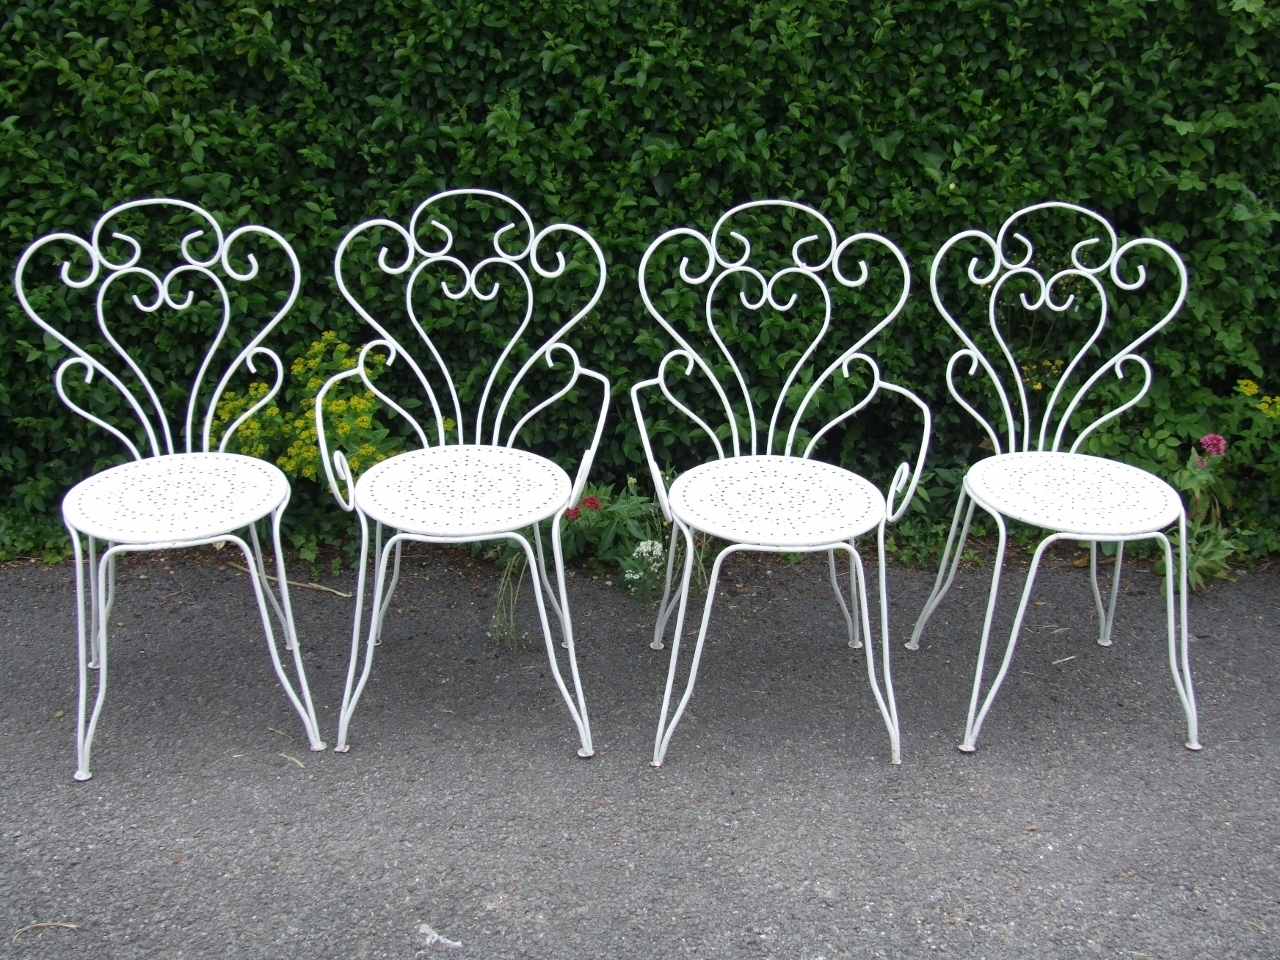 G274 s elegant vintage french wrought iron garden table 4 chairs set la belle toffe French metal garden furniture